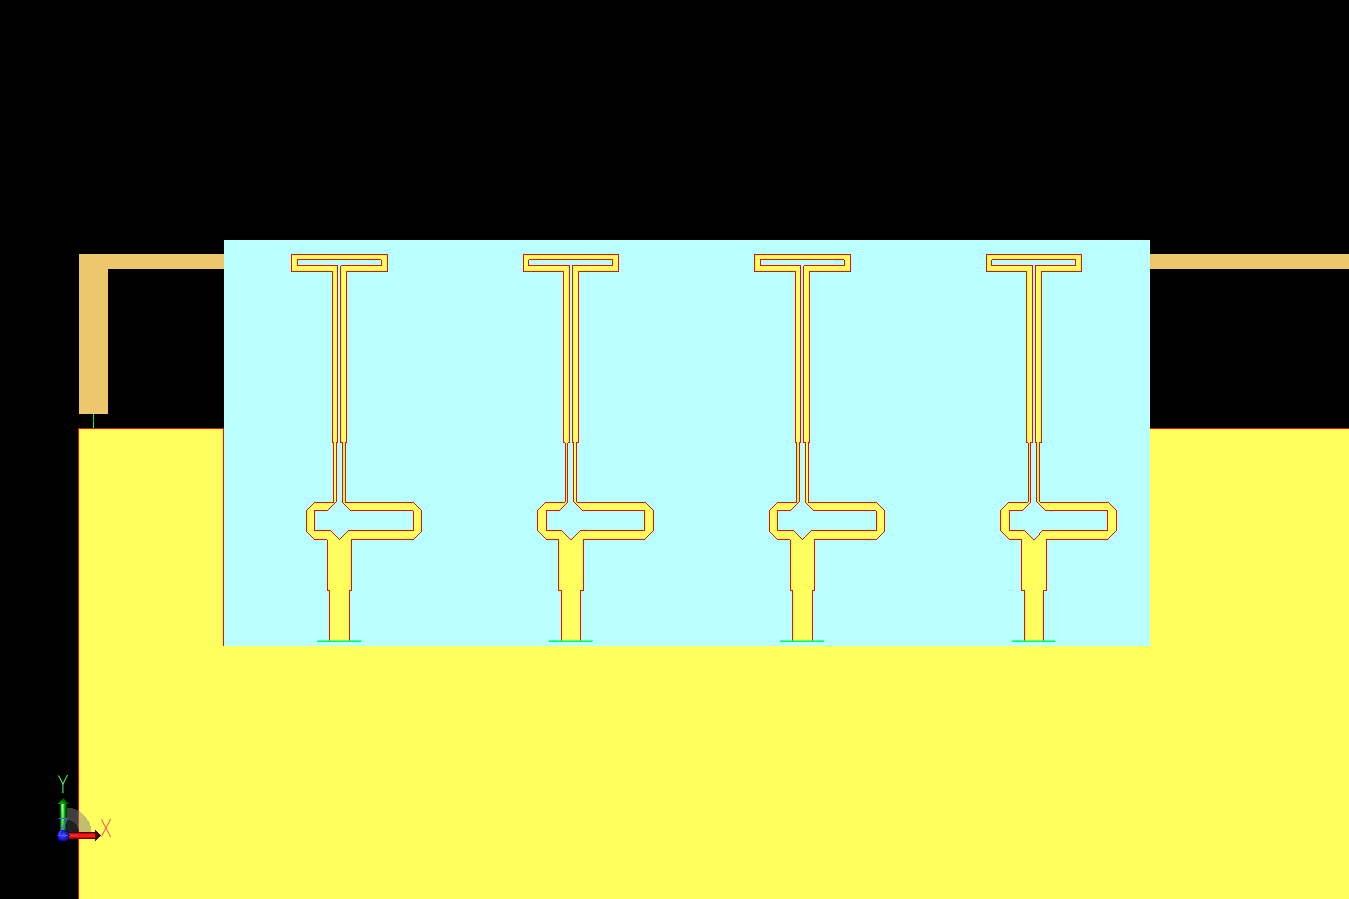 Figure 2: A CAD view of the 5G array showing the four Yagi-Uda elements on a dielectric substrate with the 4G inverted L antenna behind.